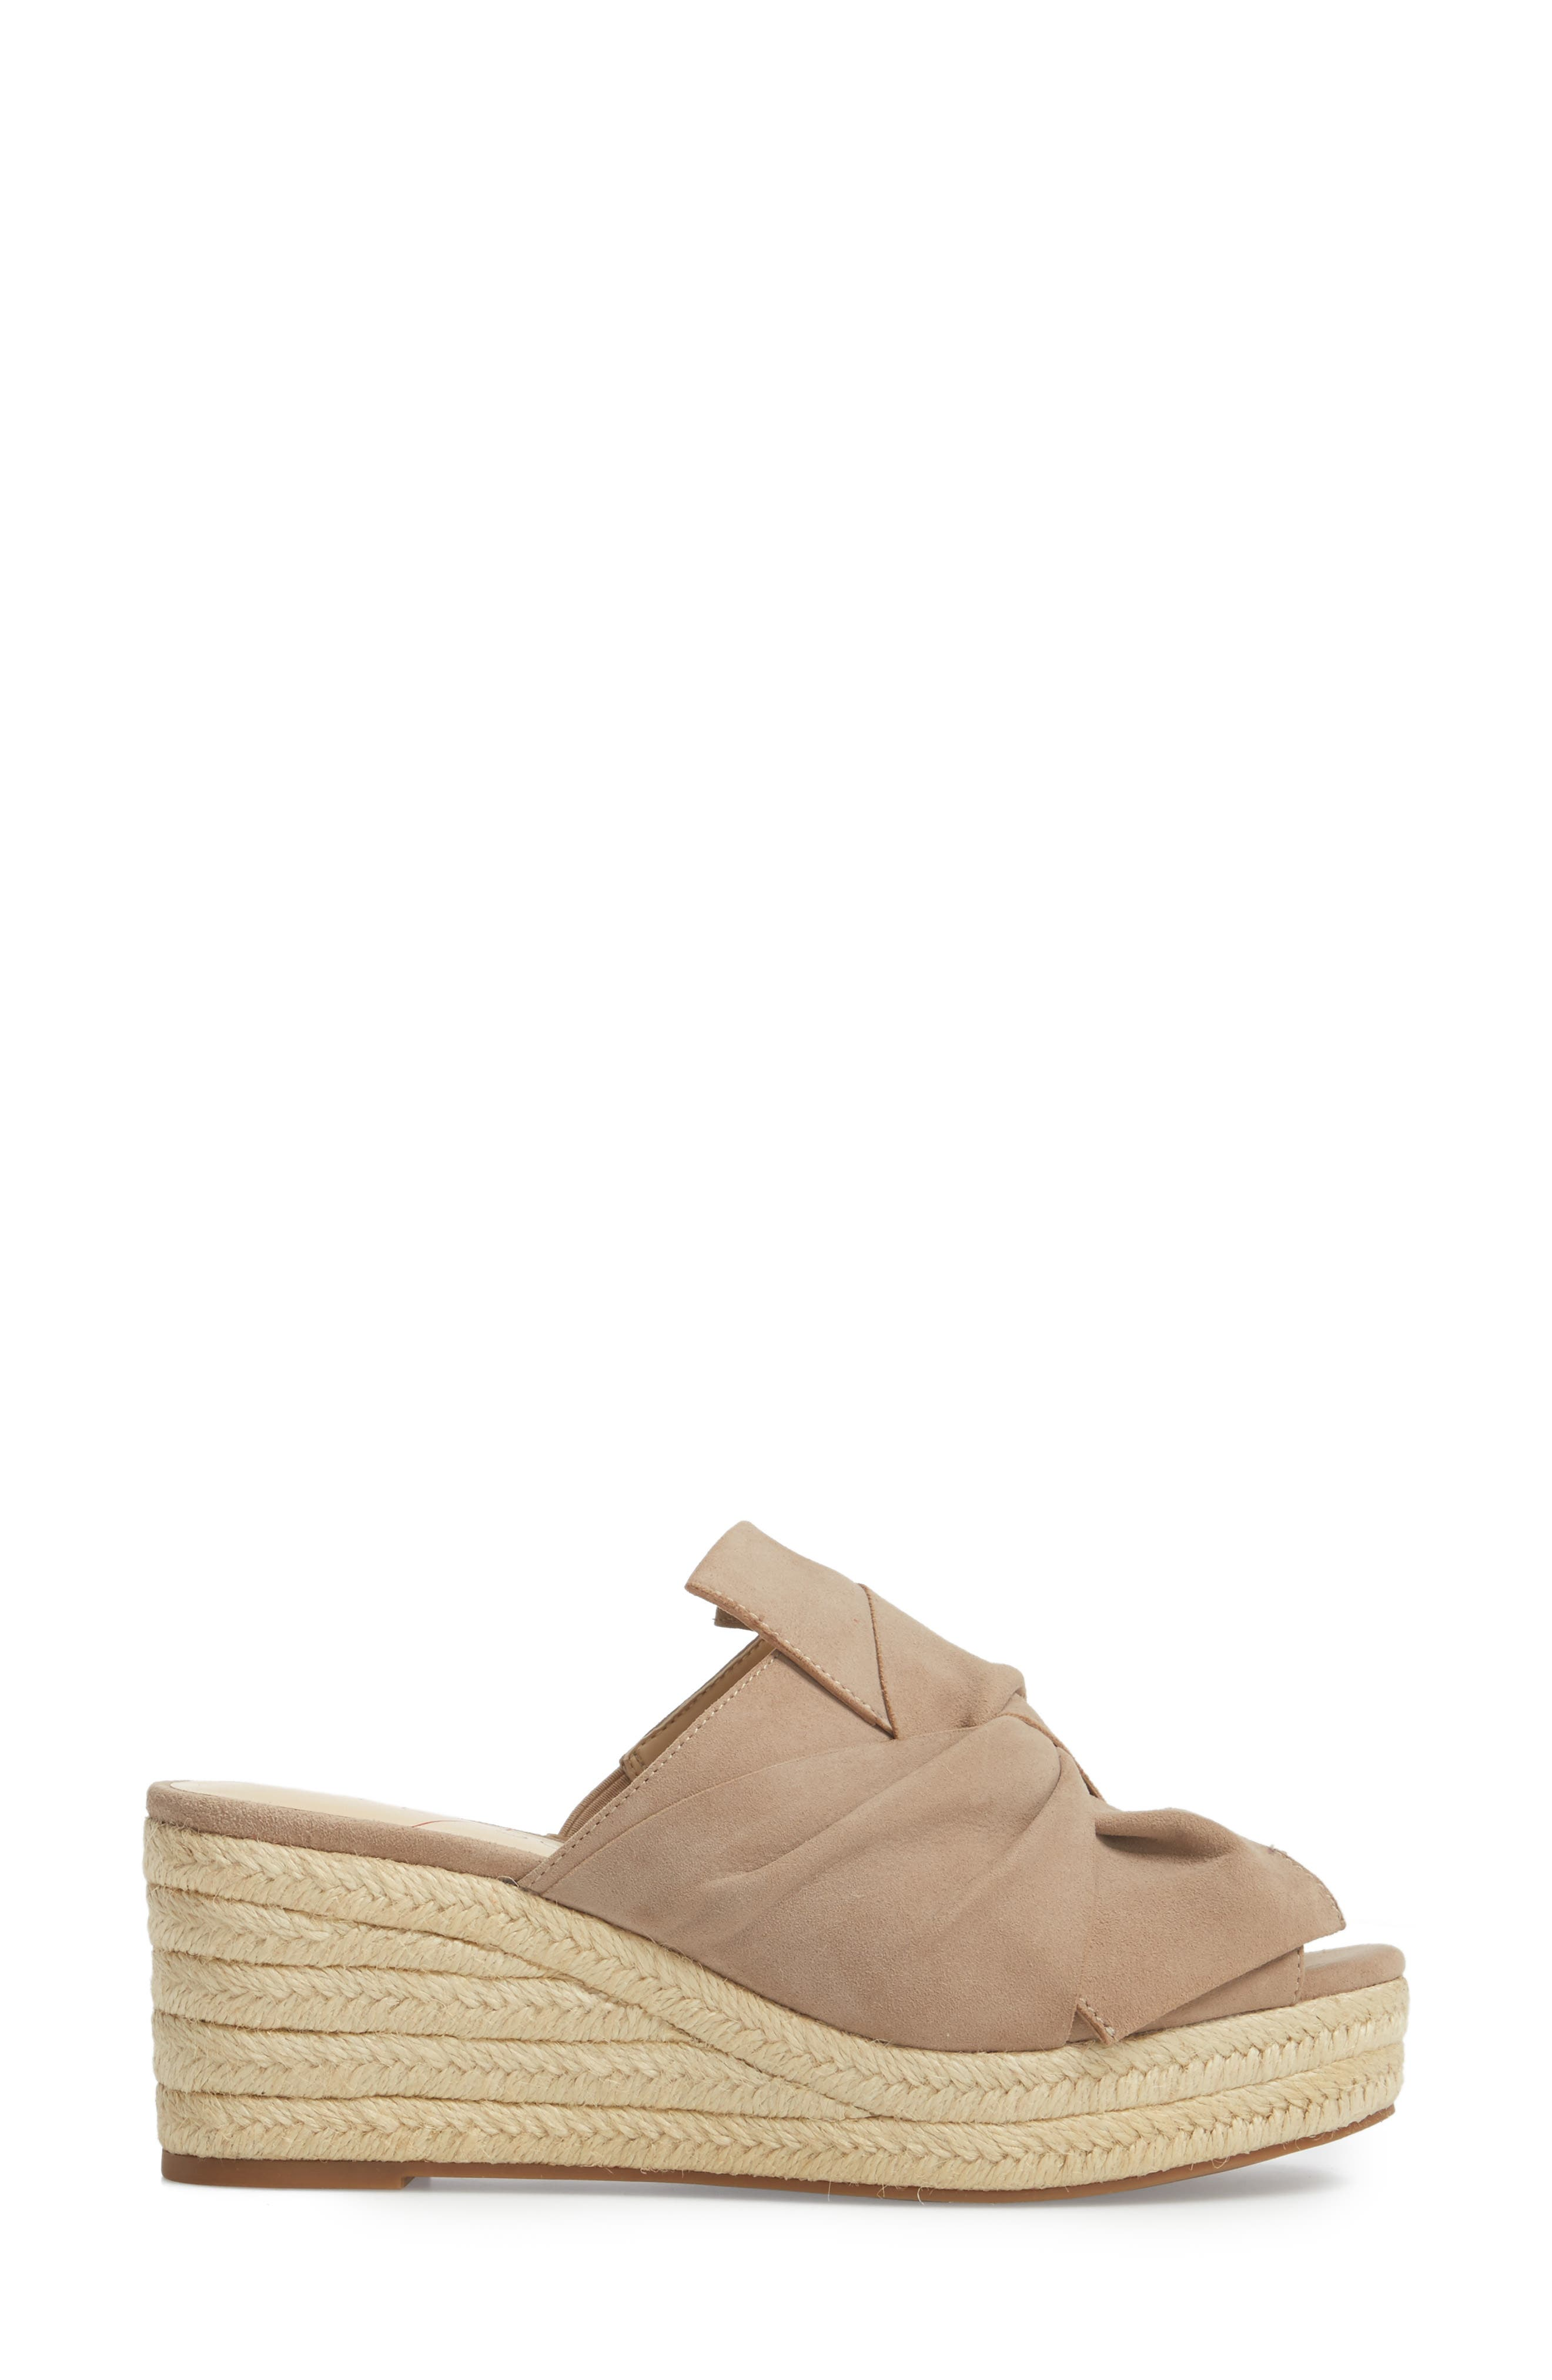 SOLE SOCIETY, Carima Espadrille Wedge, Alternate thumbnail 3, color, TAUPE FABRIC